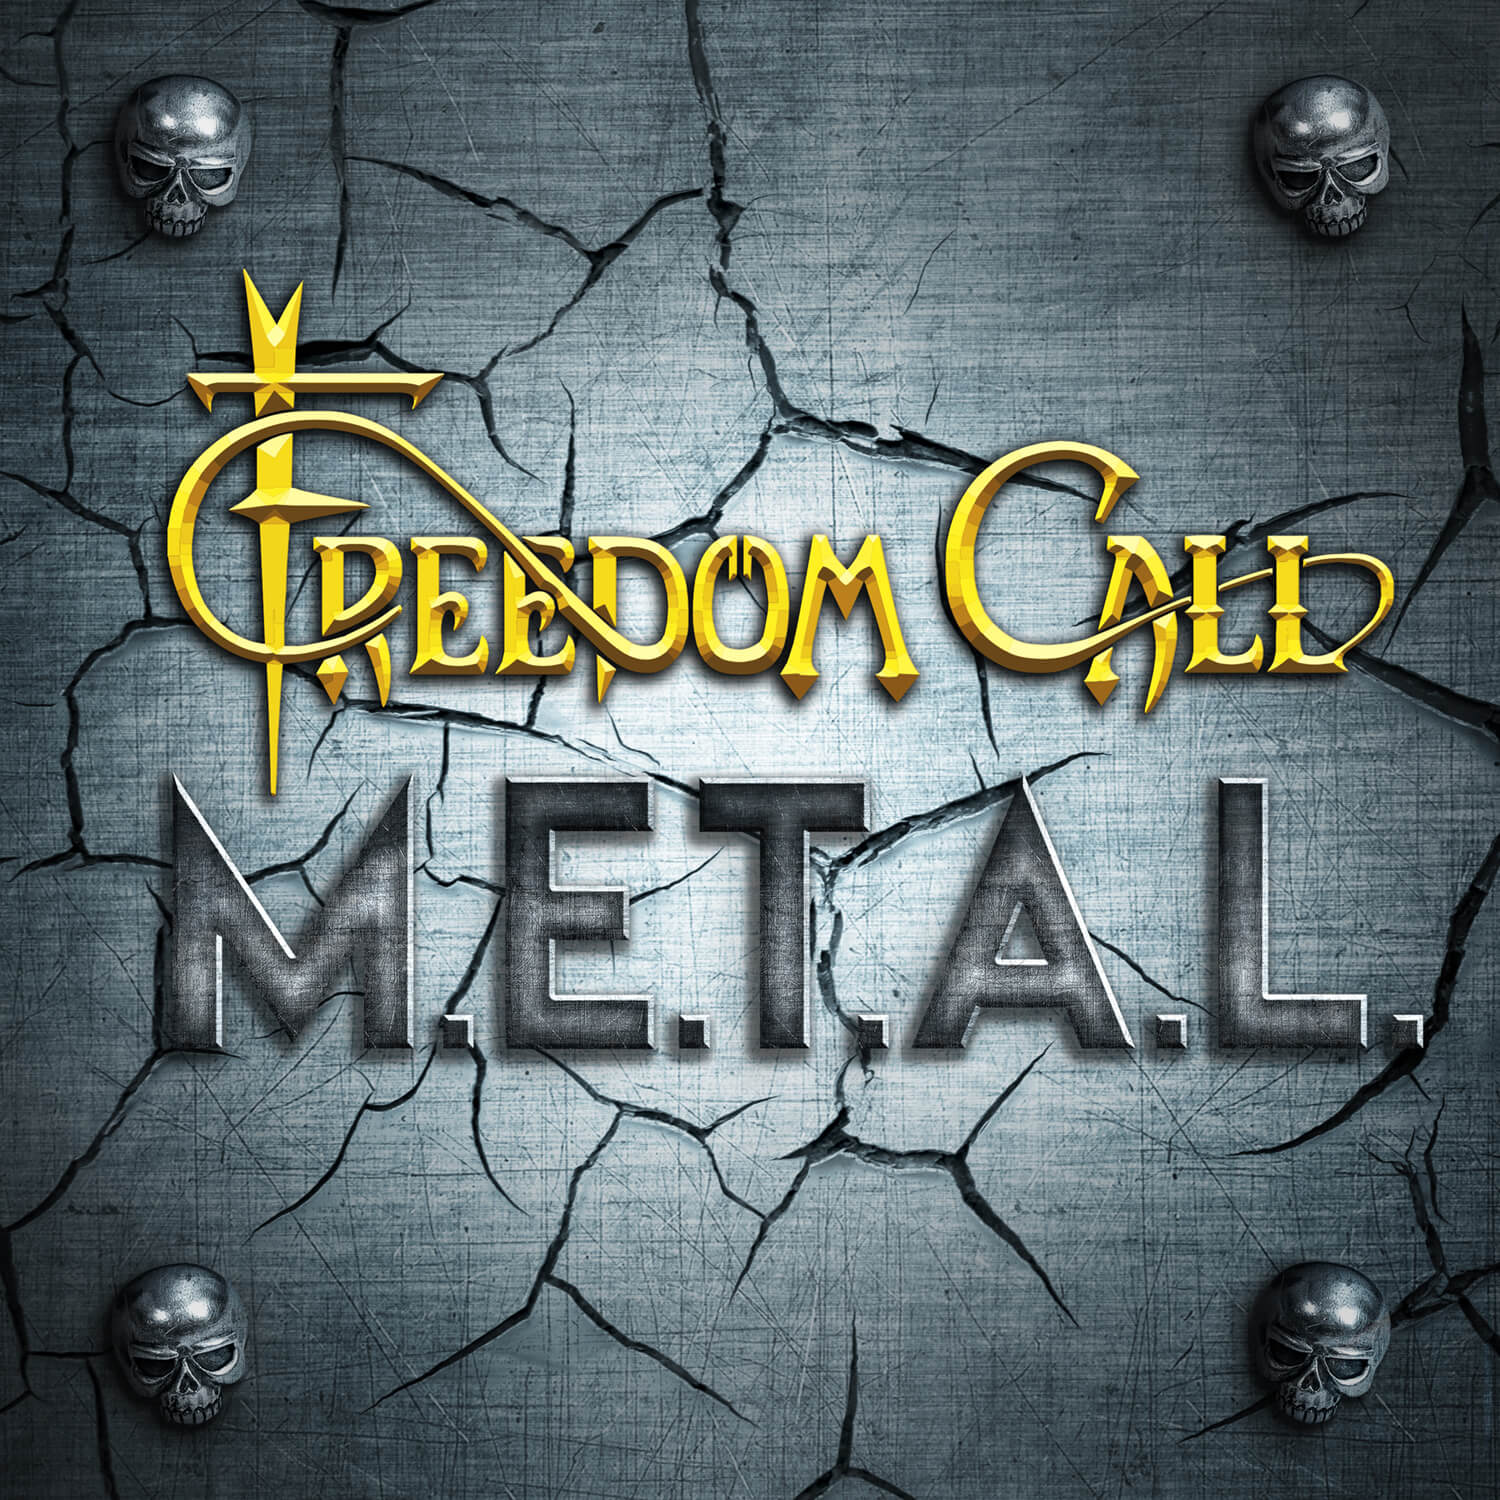 FreedomCall_METAL-Single_web.jpg